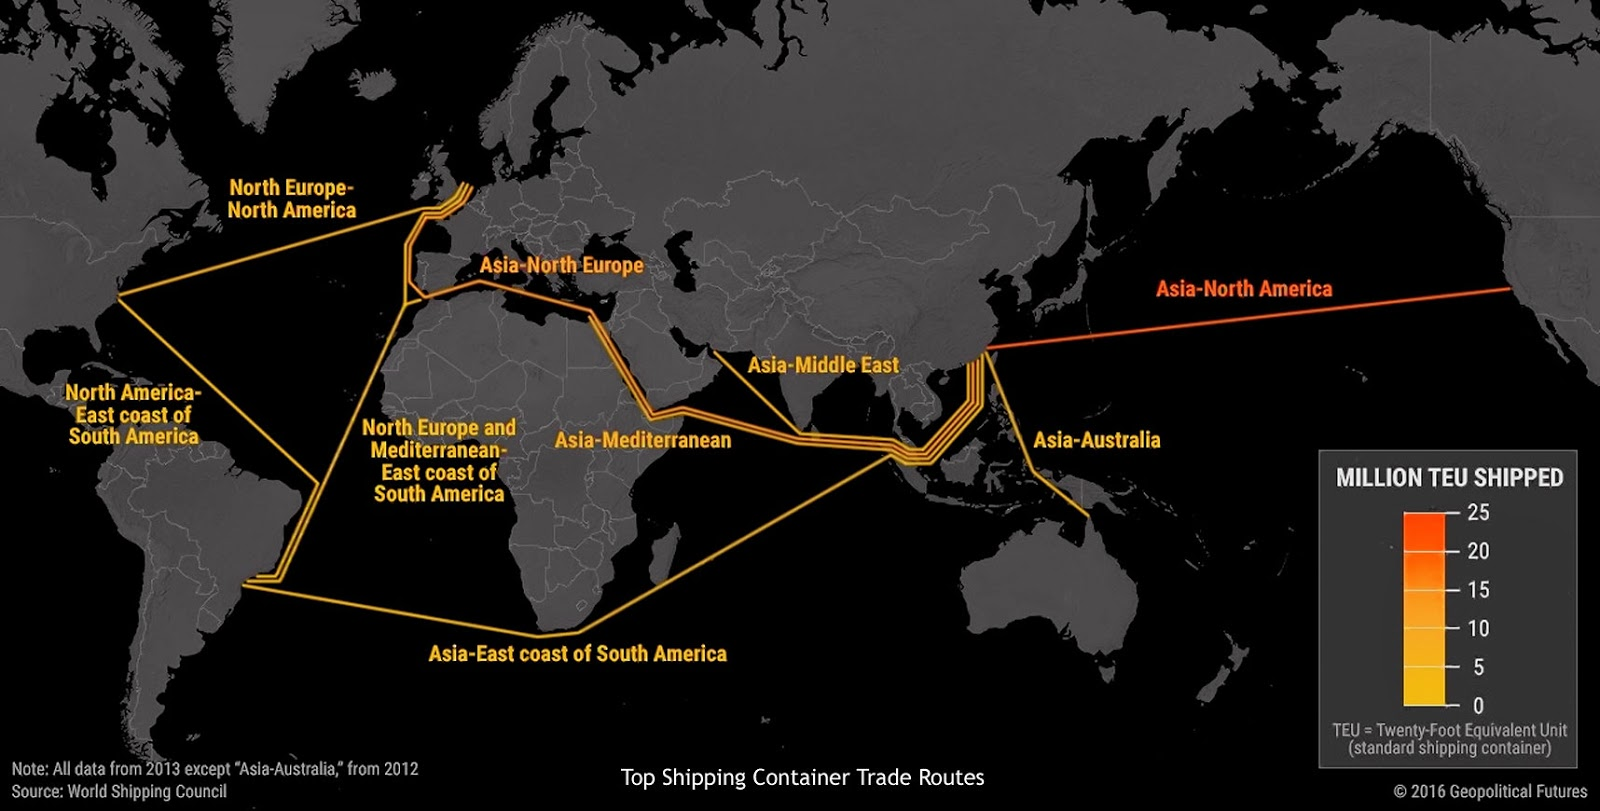 cma cgm has since scrapped plans to service us ports and moved vessel to the asia north europe conveyor belt